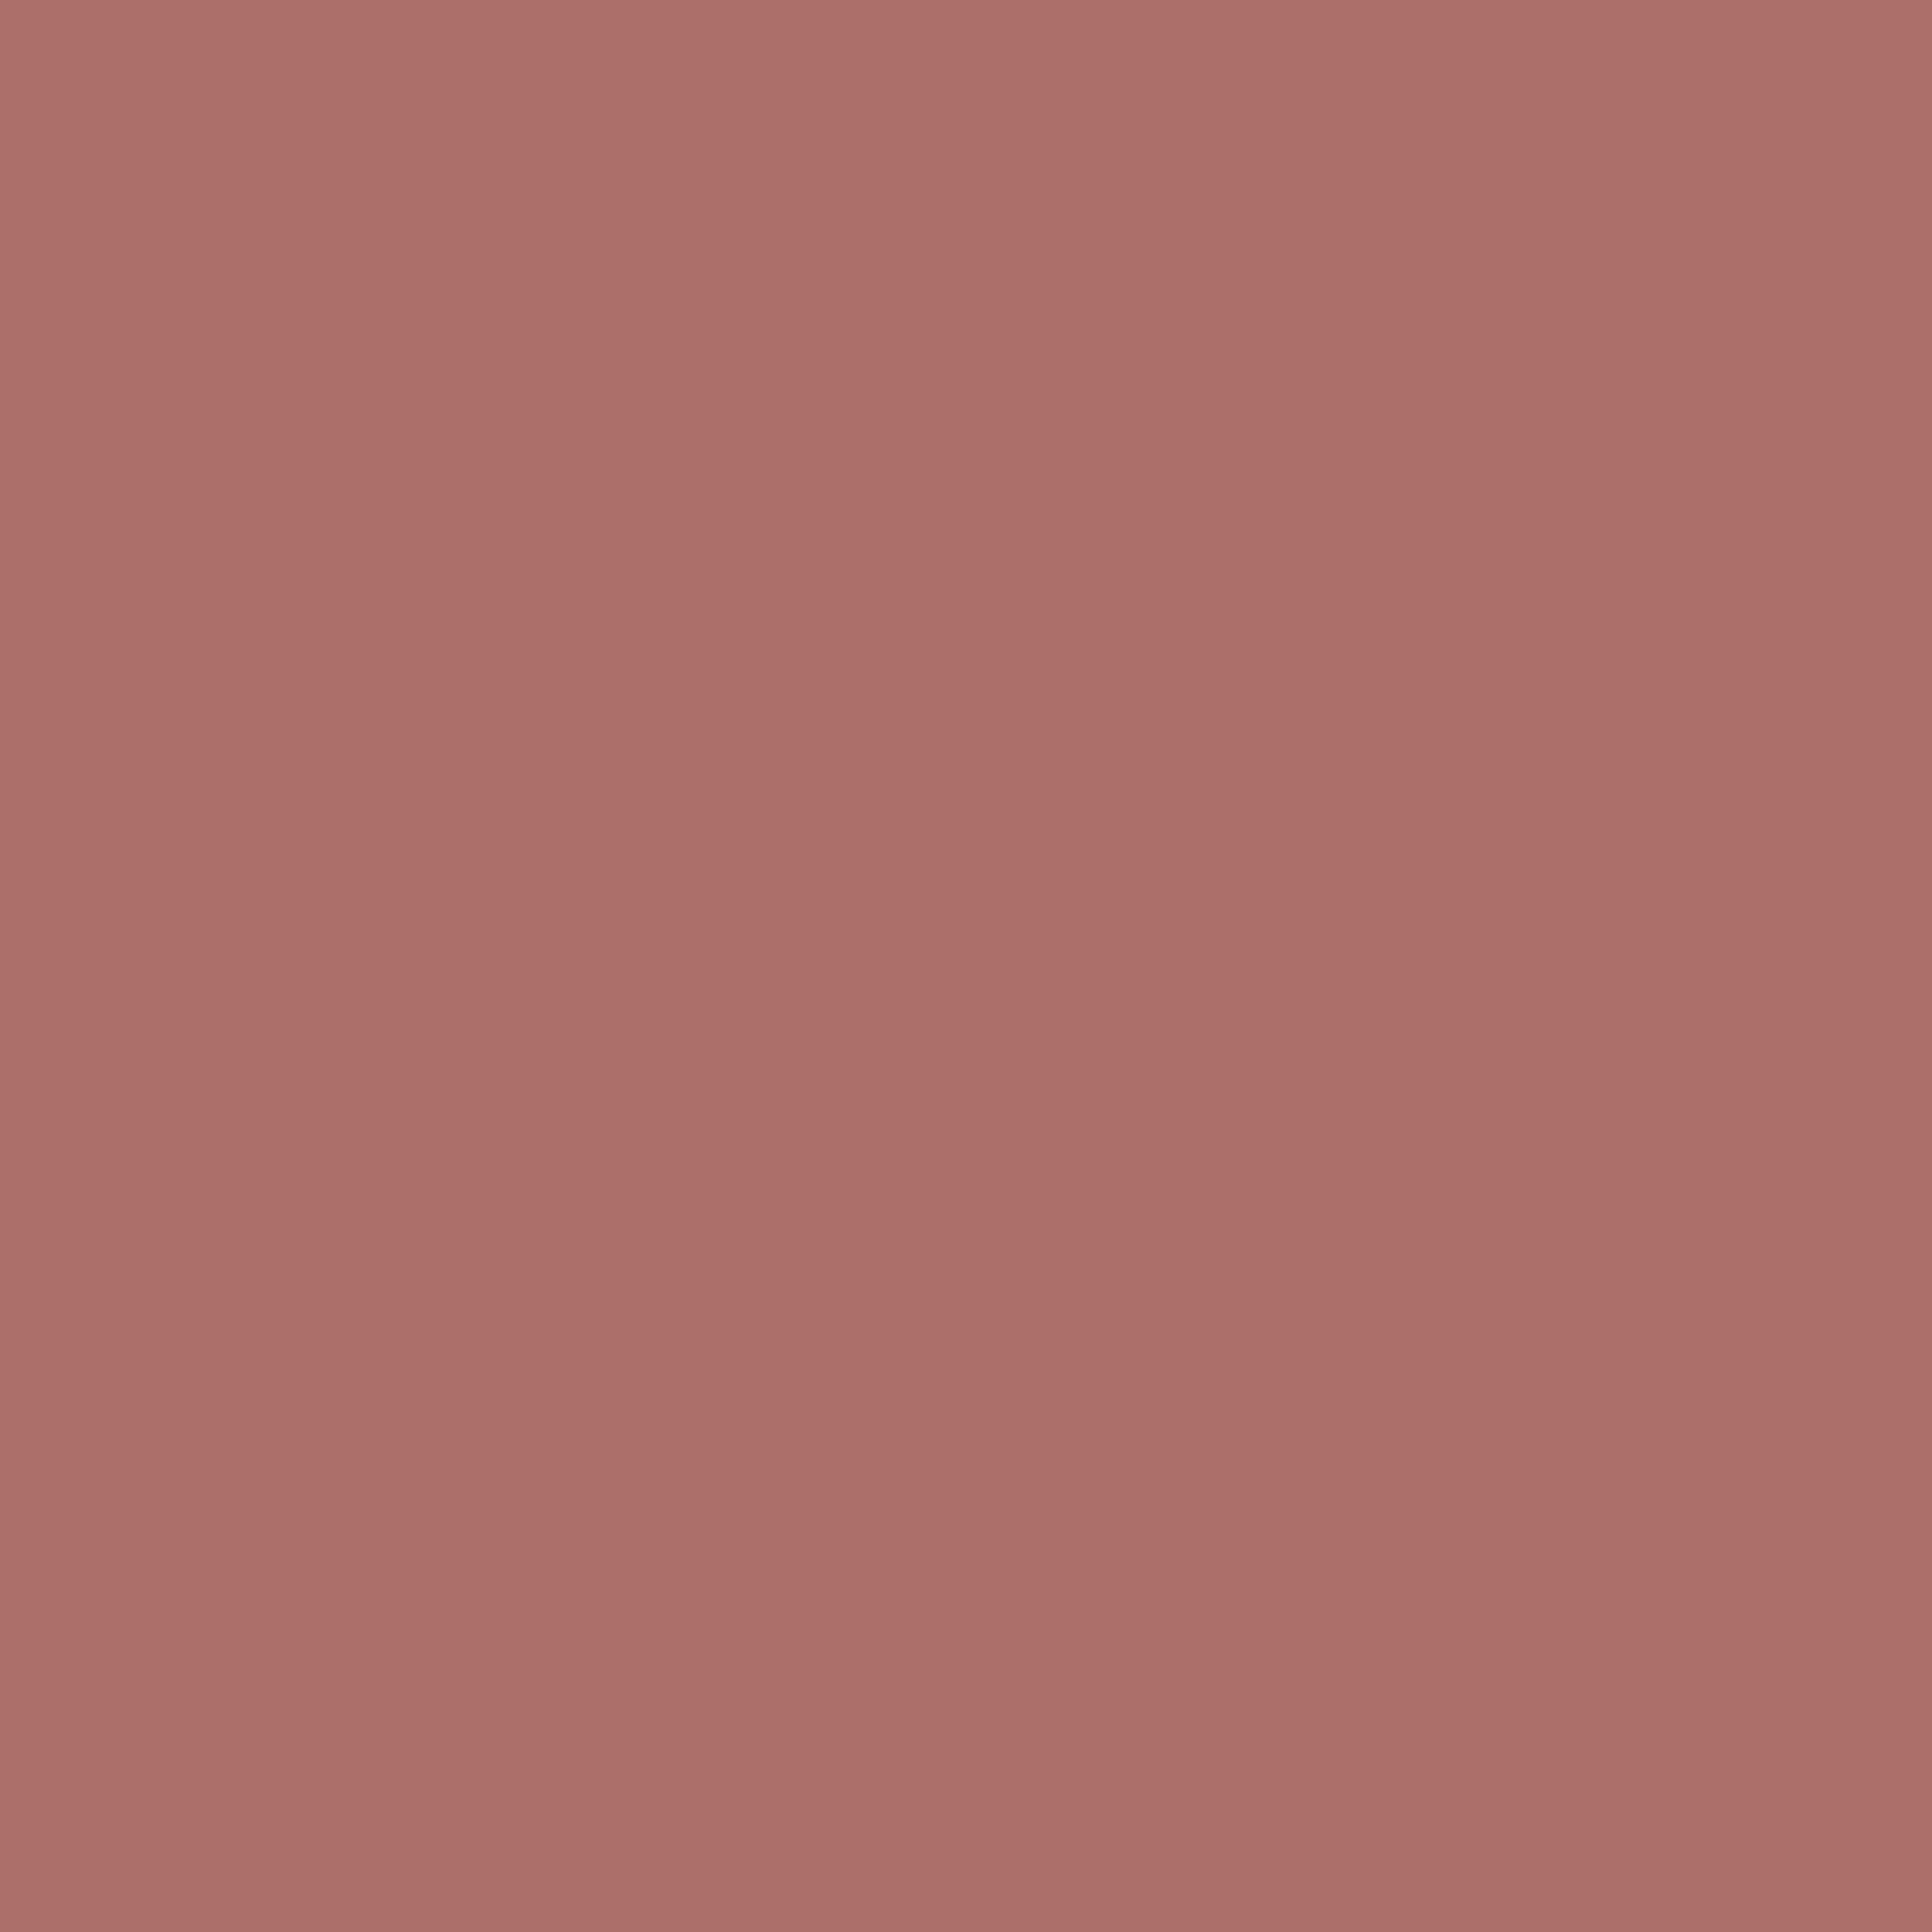 2048x2048 Copper Penny Solid Color Background